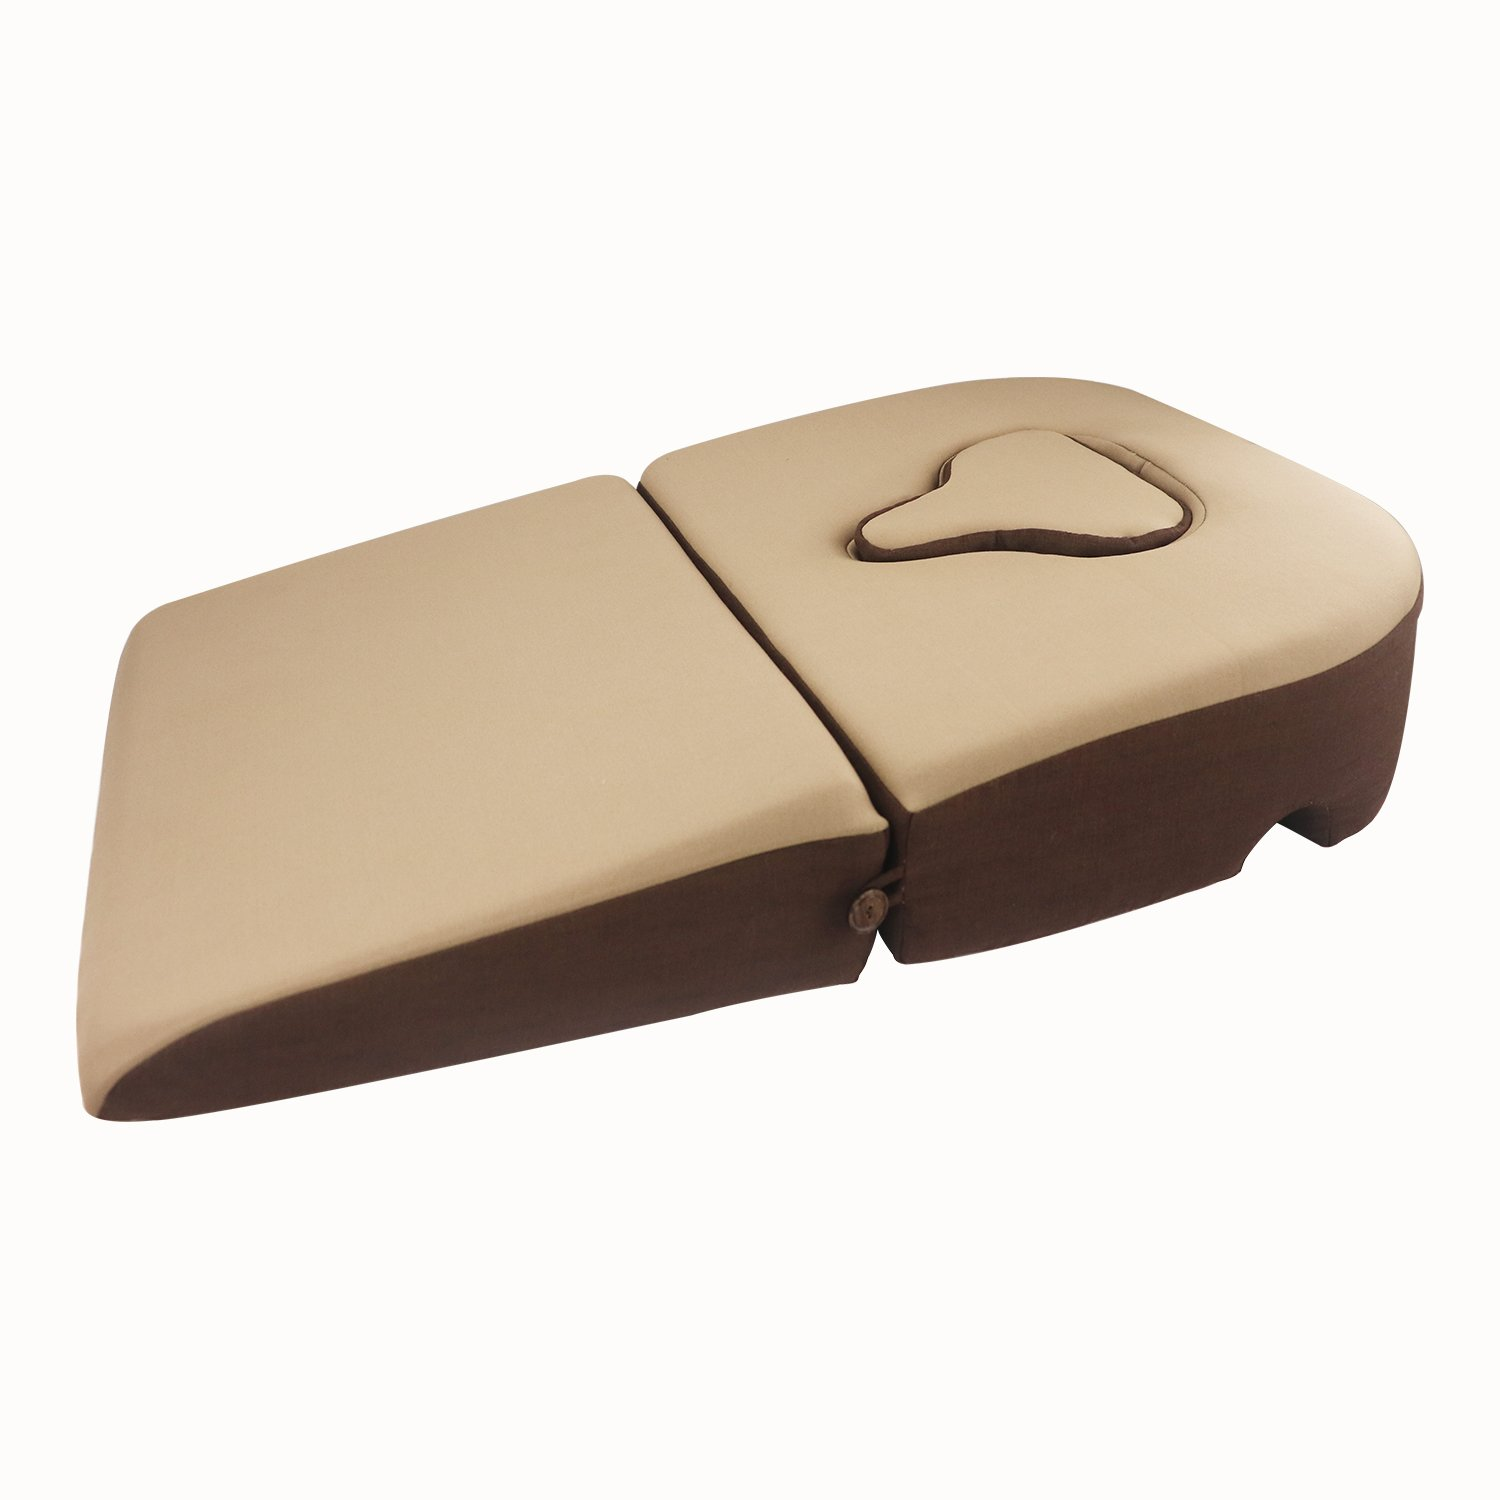 Prodigy TW Face Down Pillow, for Post-Eye-Surgery use,Wedge Cushion, Removable Cover by Prodigy TW (Image #6)